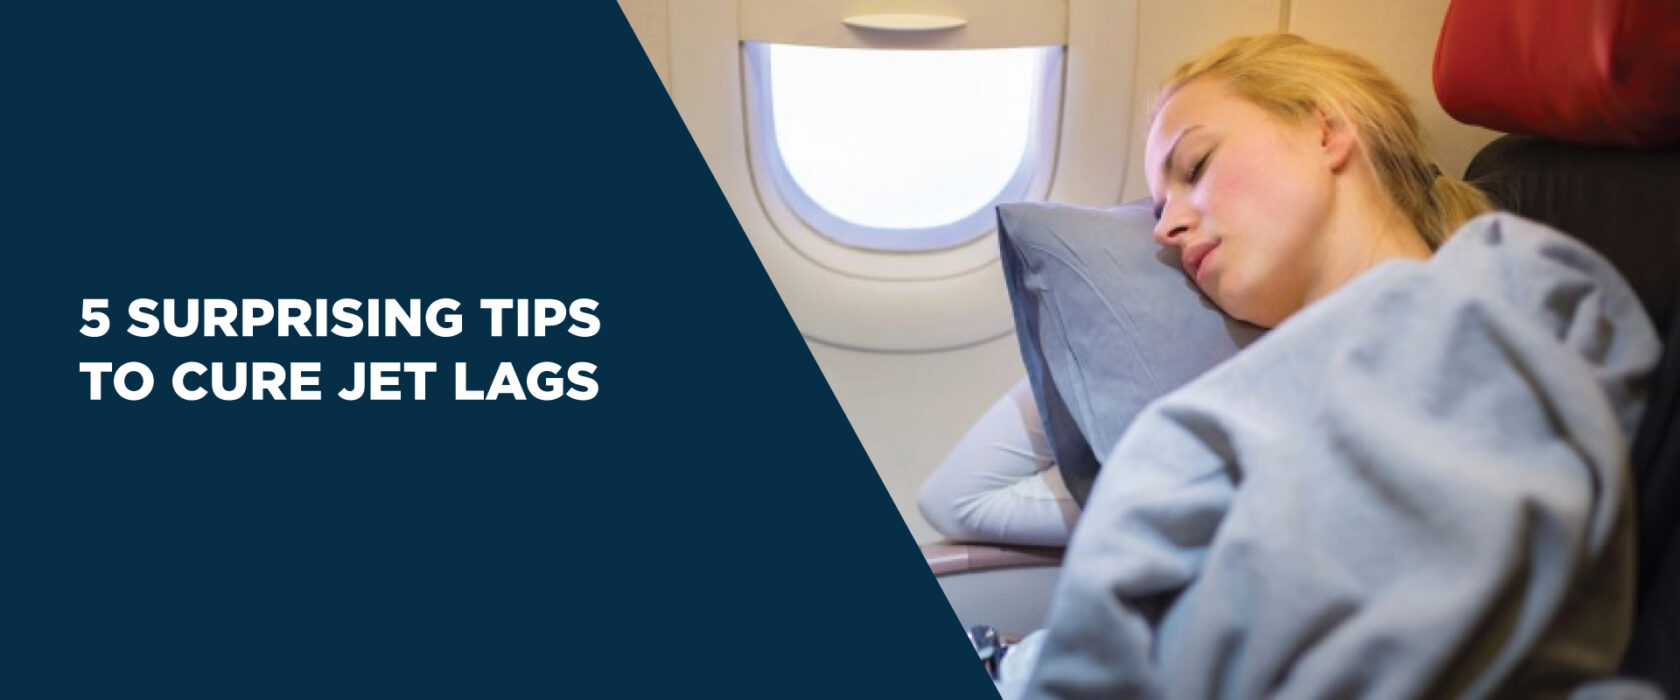 5 Surprising Tips to Cure Jet Lags